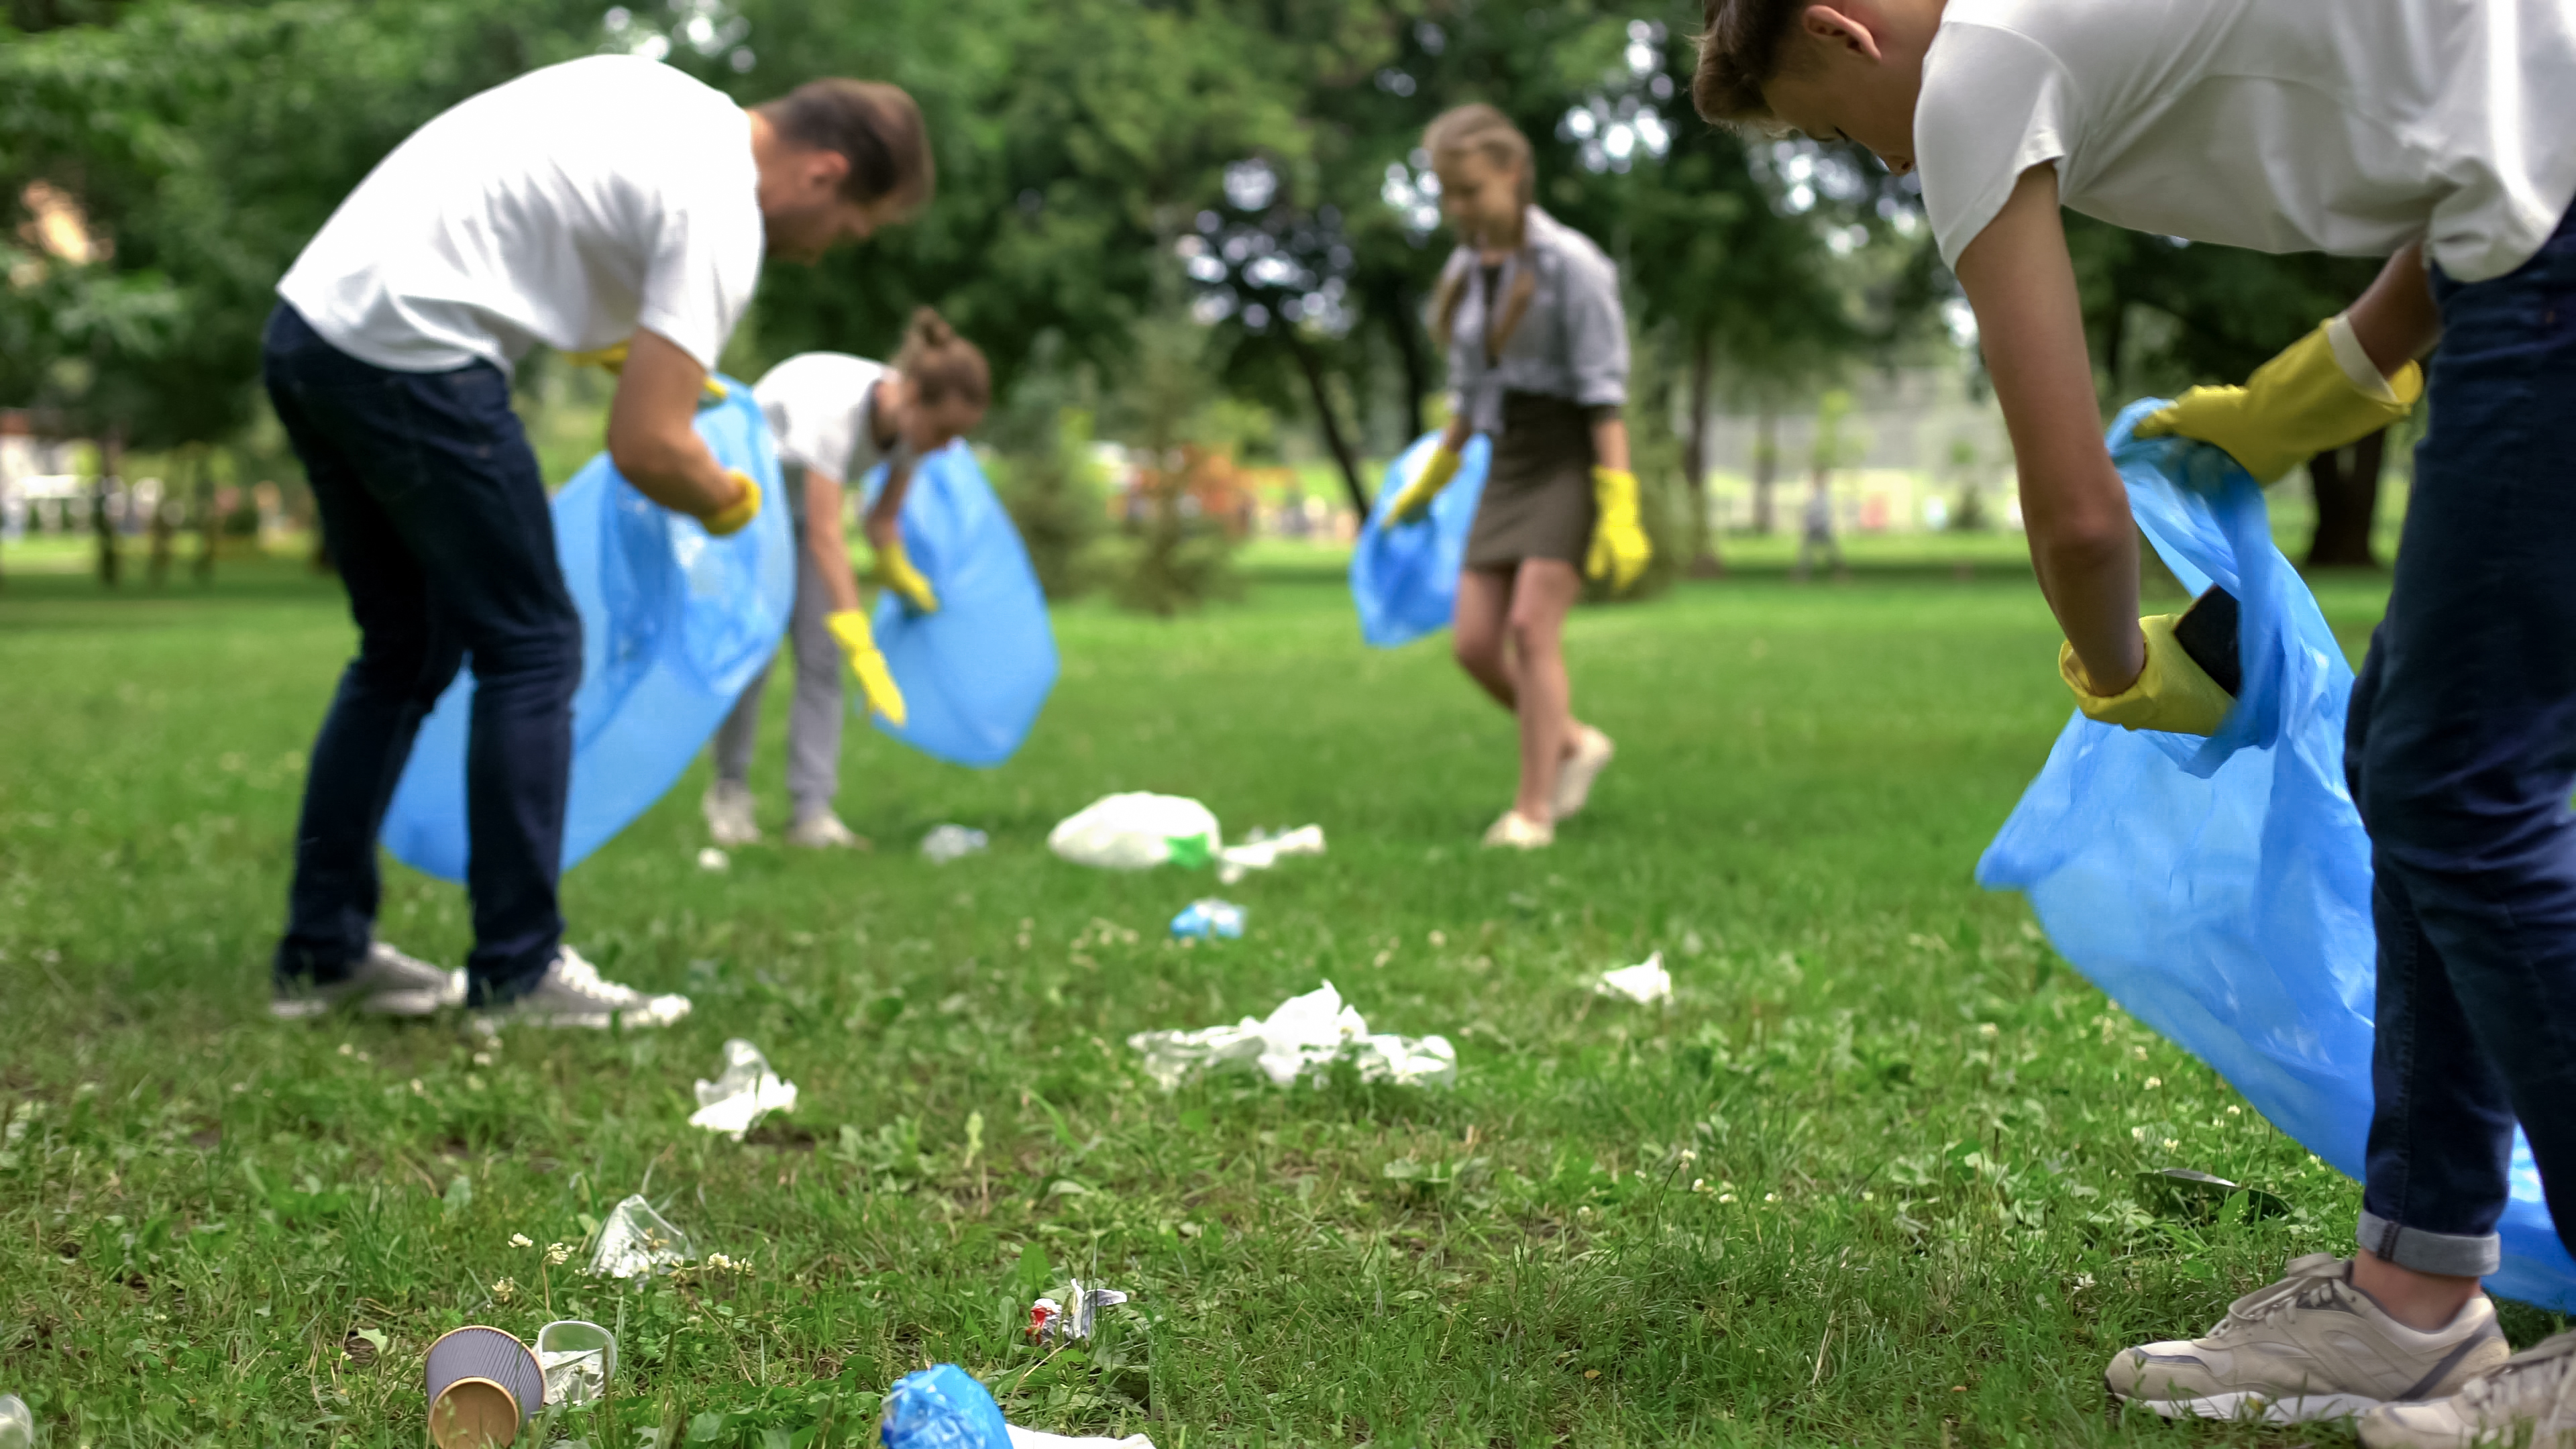 educating the future generation on plastic pollution and anti littering